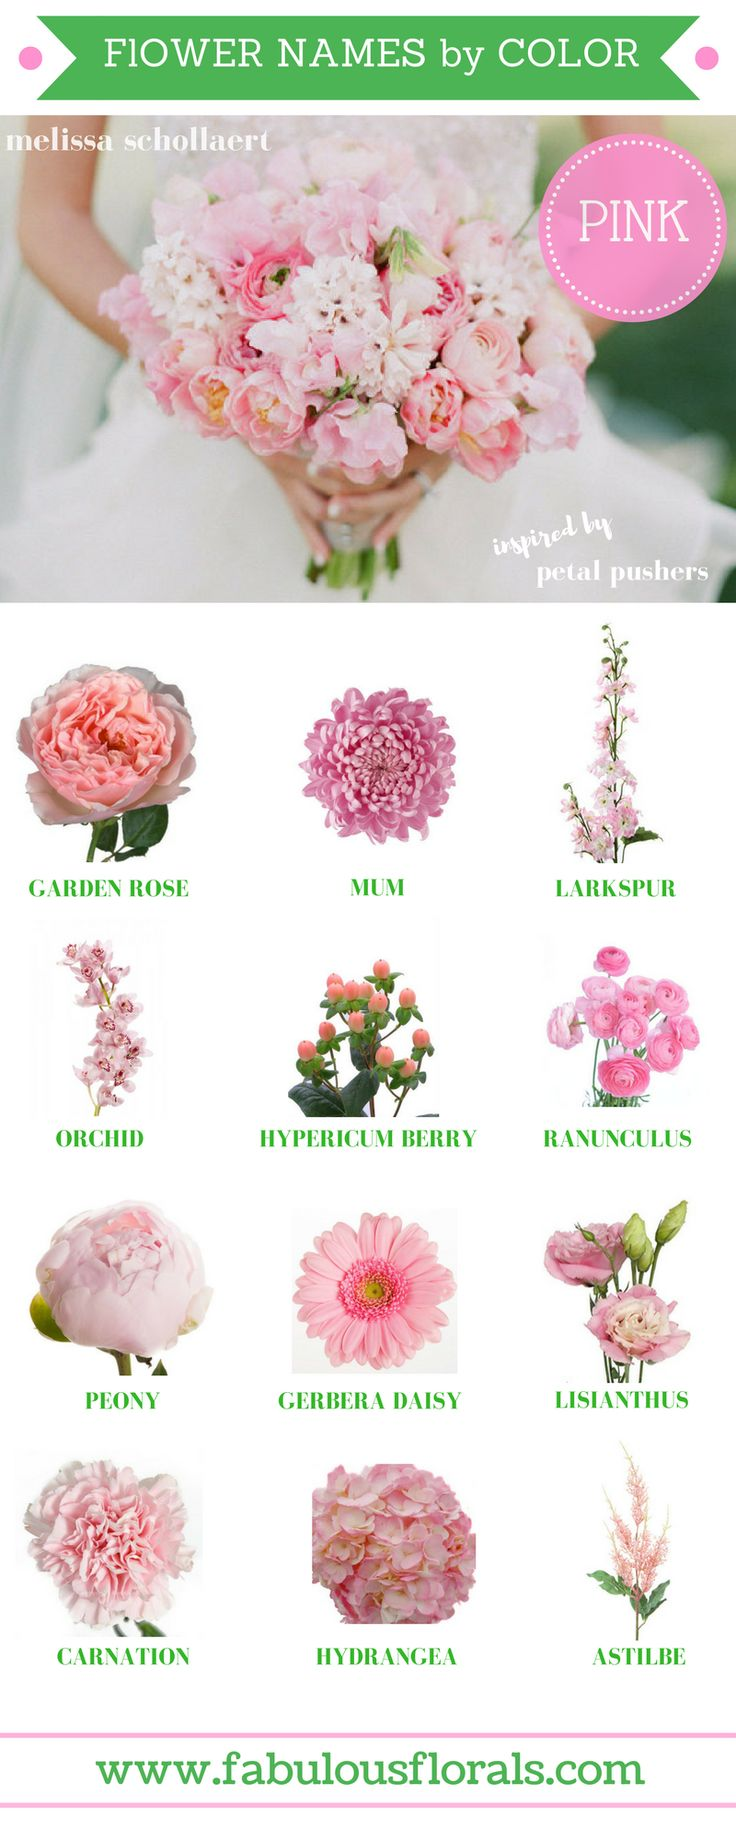 How To DIY Wedding Flowers! 2018 Wedding Flower Trends. Easy DIY Tutorials and How to Tips & Tricks! #diywedding #diyflowers #howtomakeabouquet www.howtodiyweddingflowers.com Pink